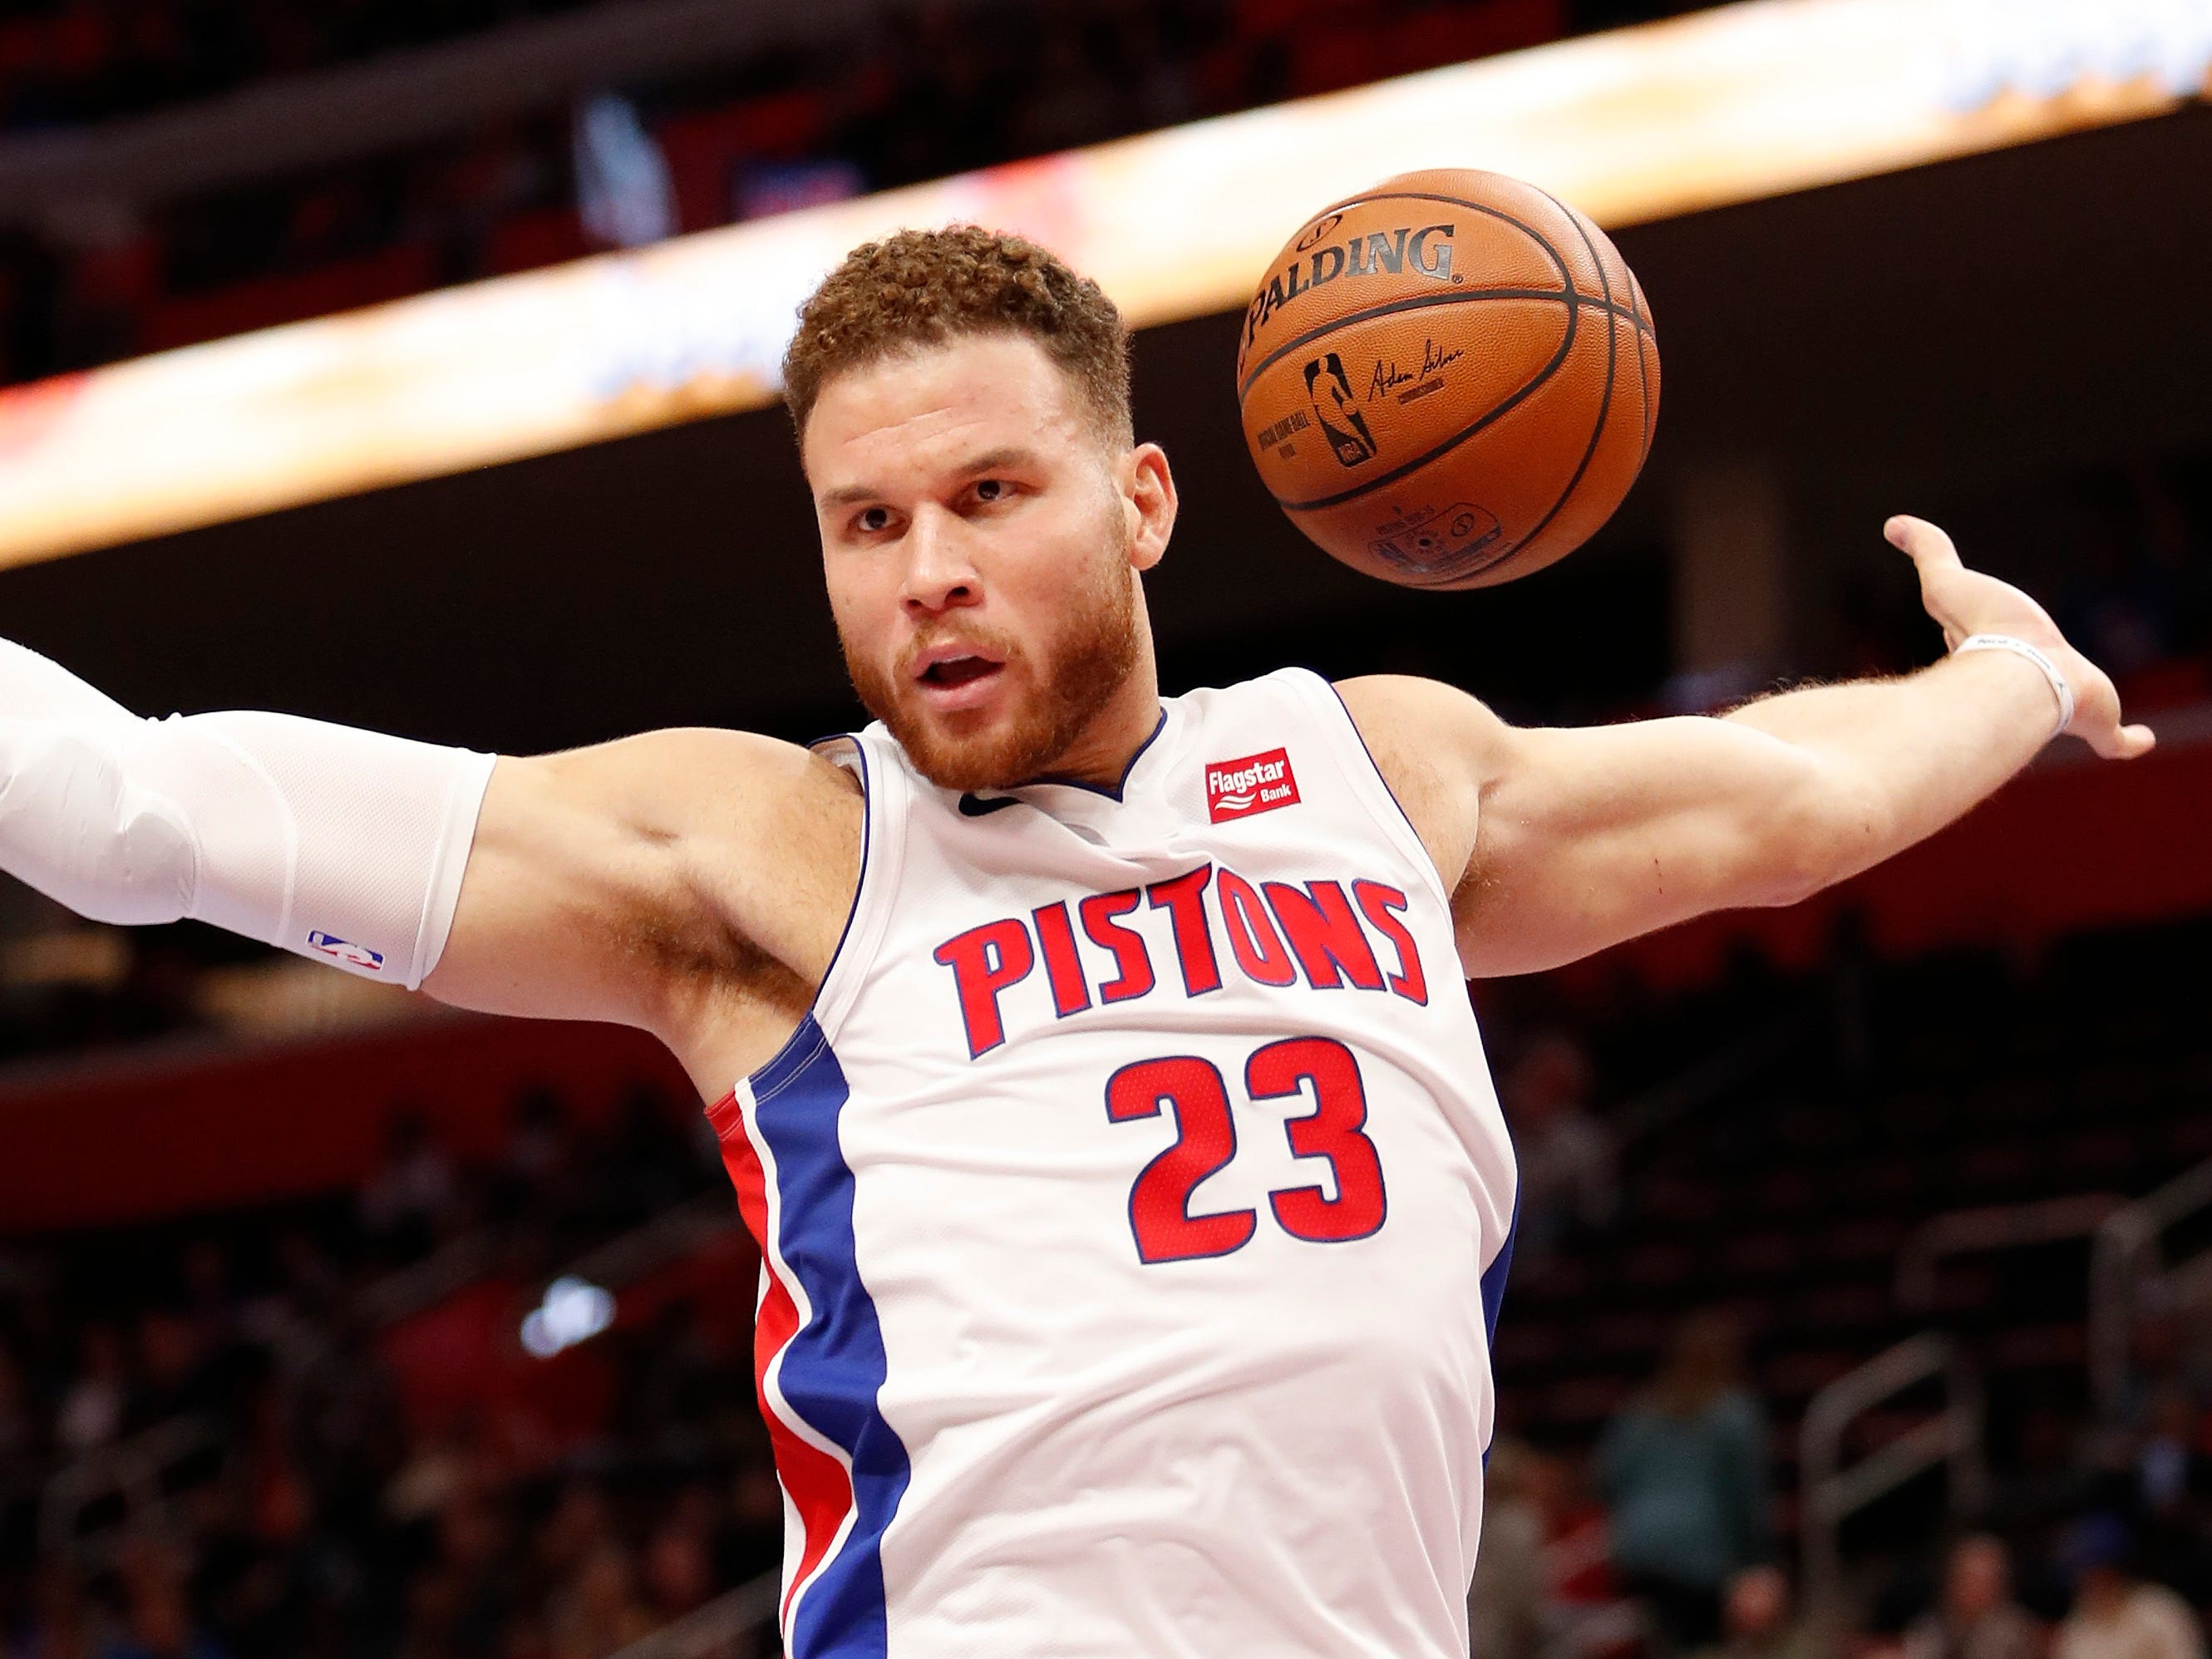 Oct. 25: Pistons forward Blake Griffin finishes off a two-handed slam against the Cavaliers.